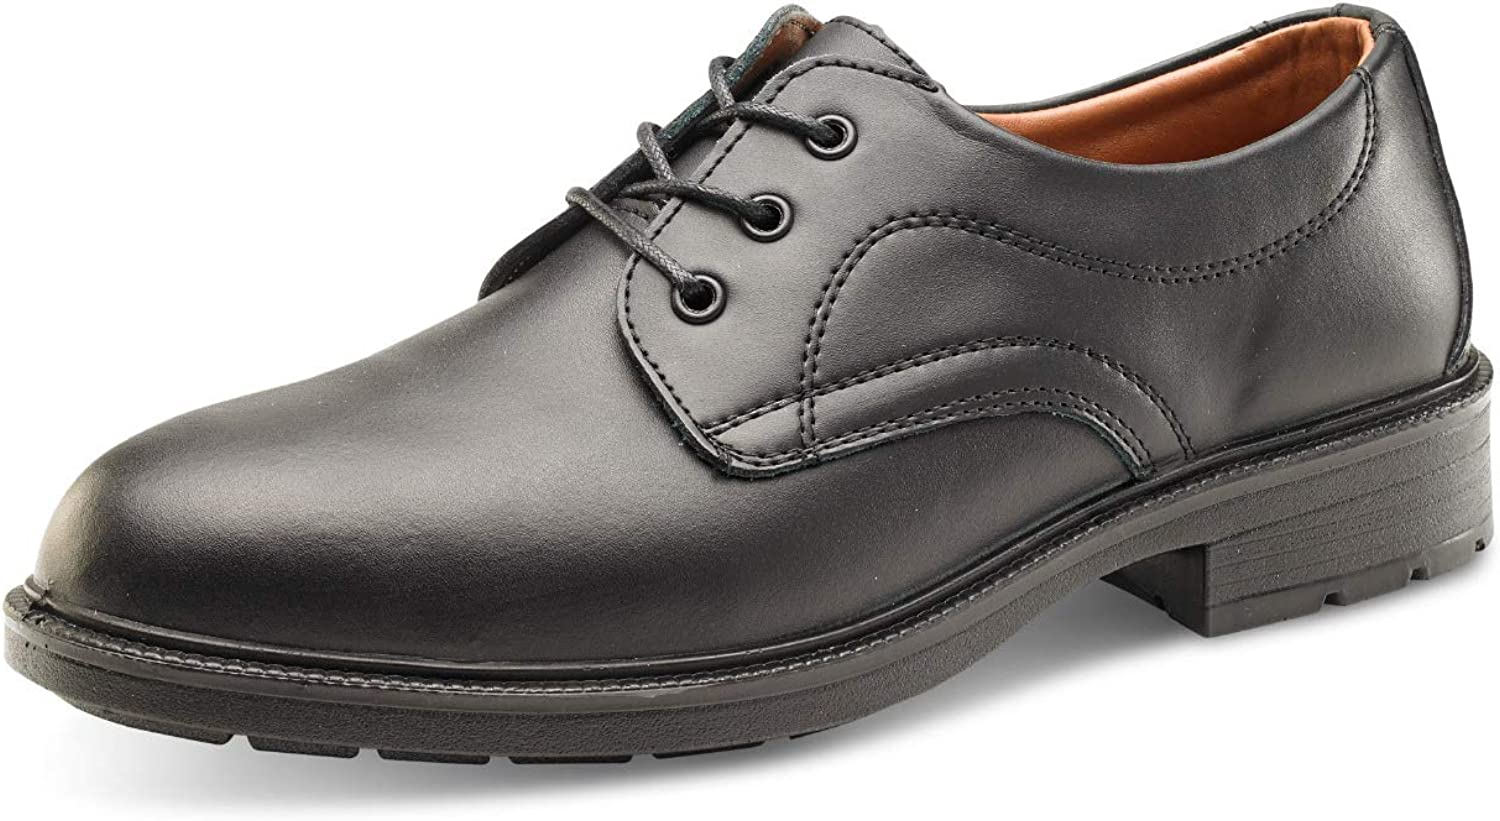 PDL Safety Footwear Black Managers Formal shoes Sizes 6-12 HGSW2010BS